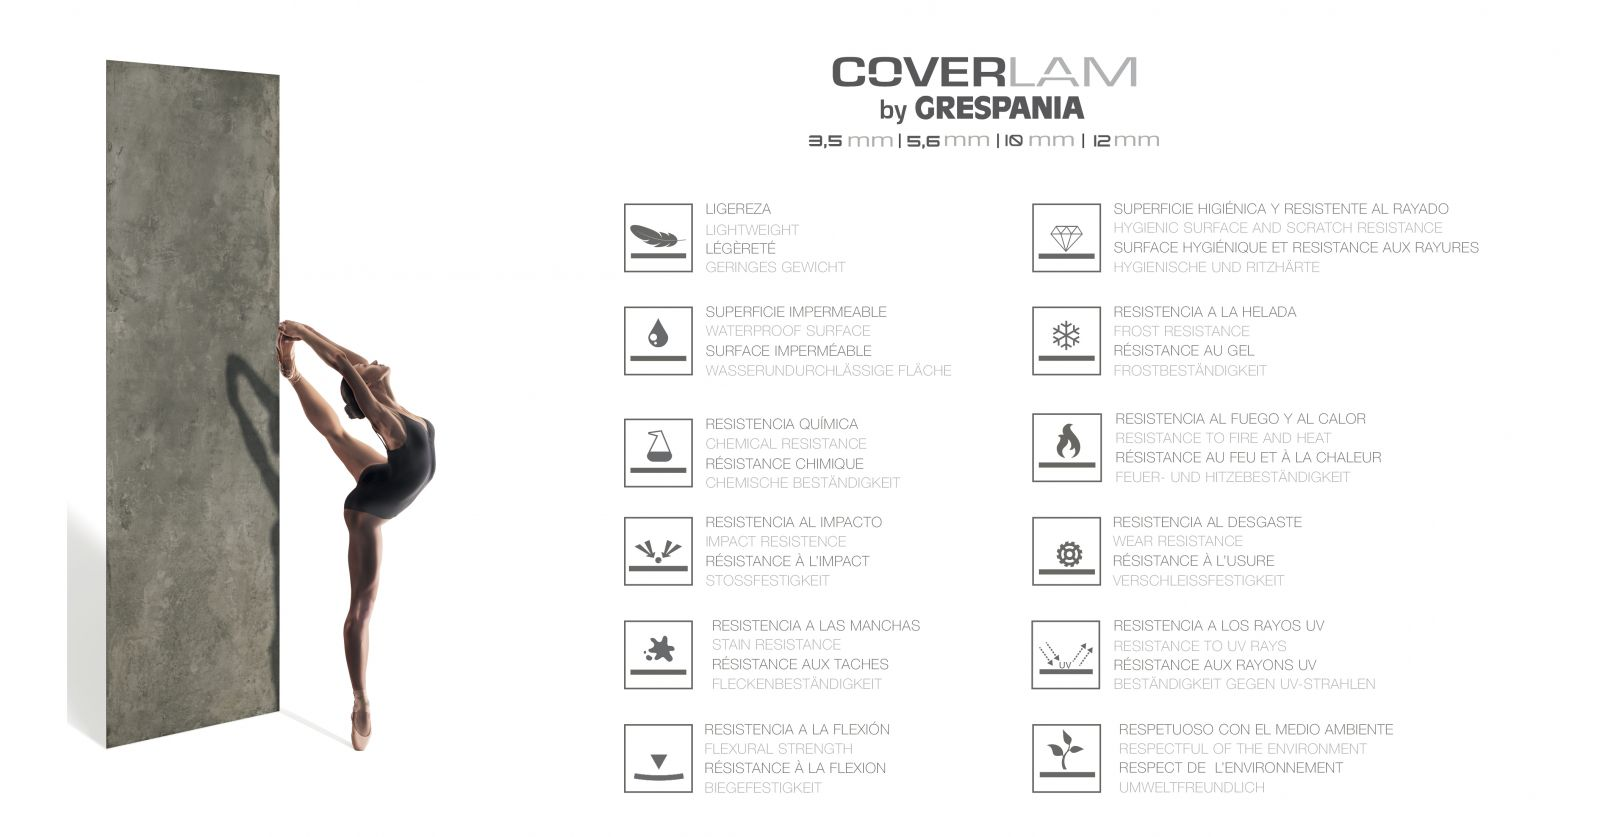 Coverlam large format and thin thickness porcelain tiles by grespania thick while still maintaining the mechanical and aesthetic properties characteristic of porcelain tile this broadens the scope of porcelain dailygadgetfo Gallery